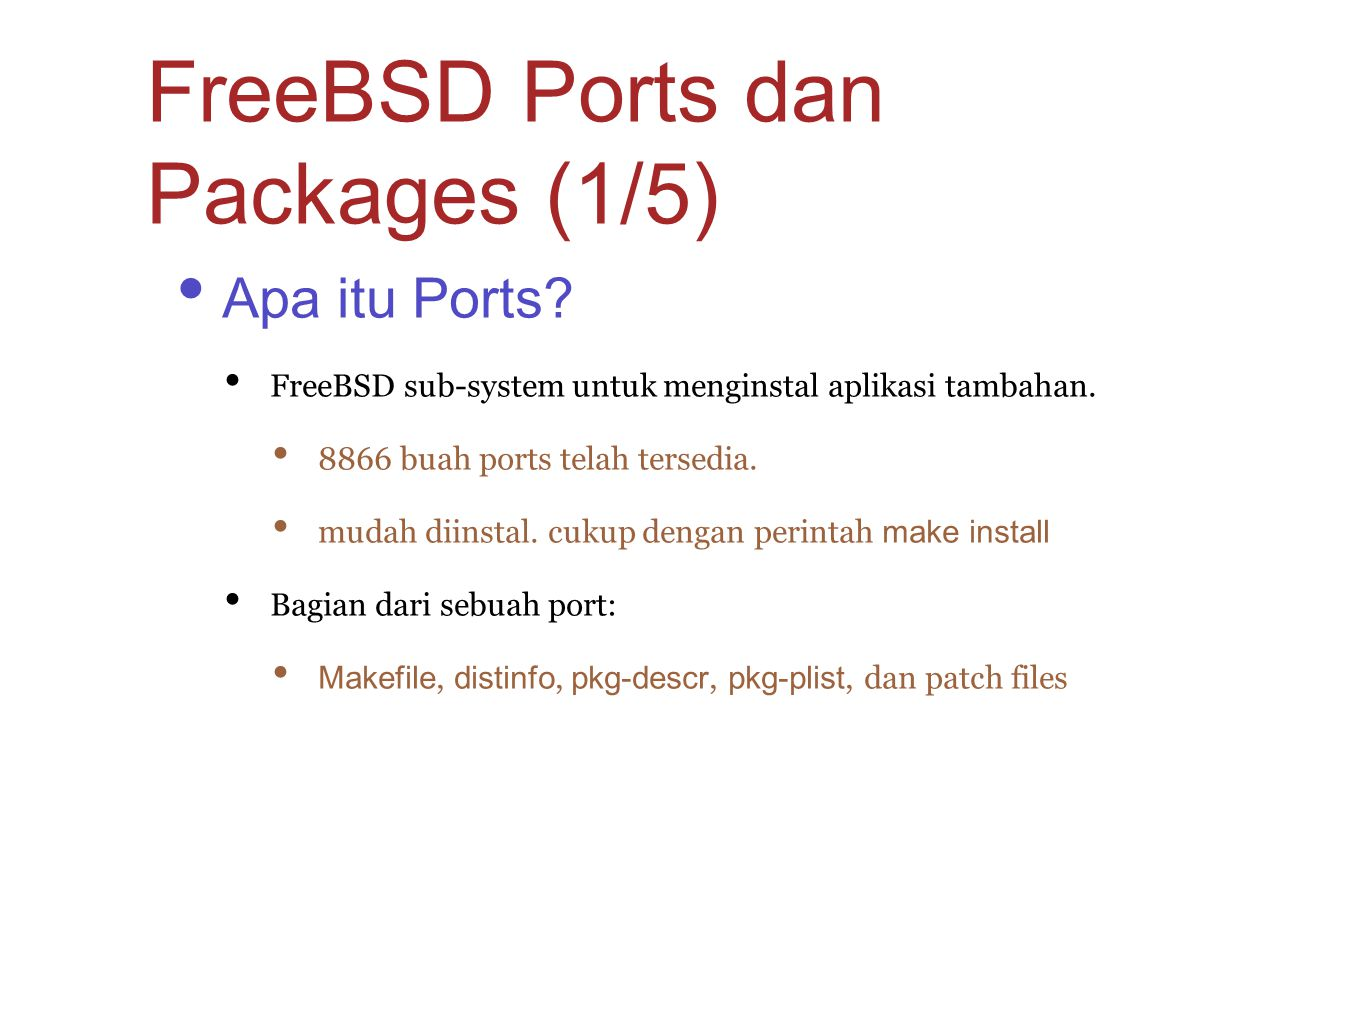 FreeBSD Ports dan Packages (1/5)